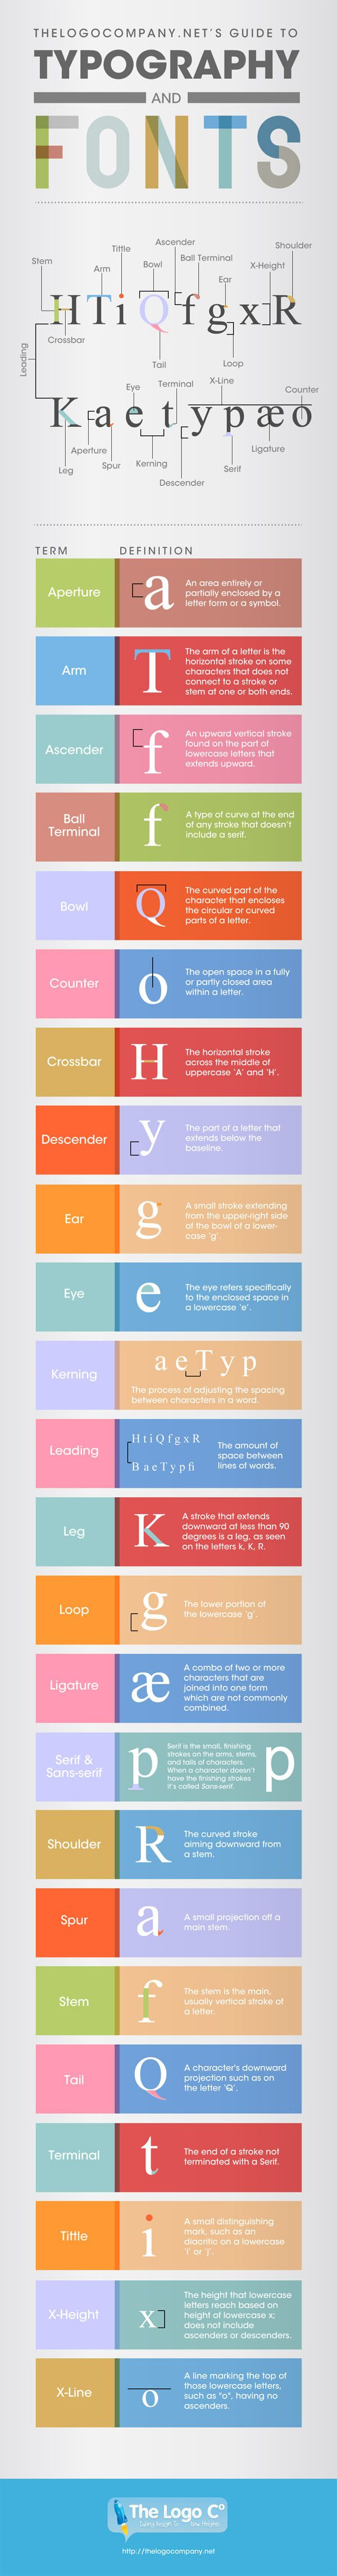 Guide To Typography And Fonts #infographic